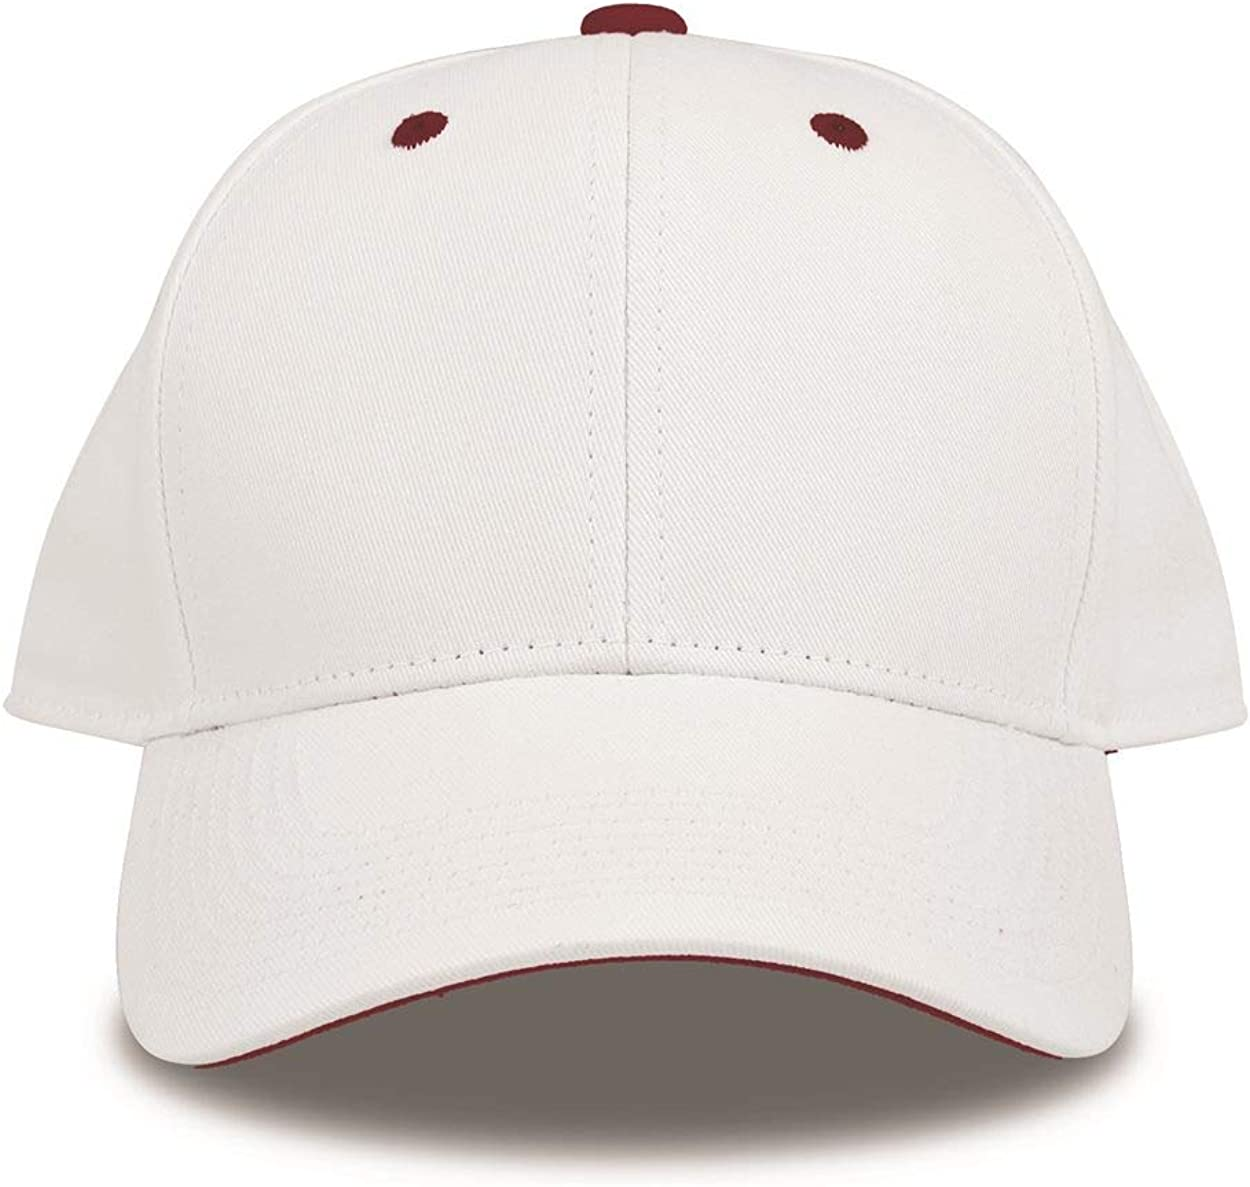 Buttons Two-Tone Visor